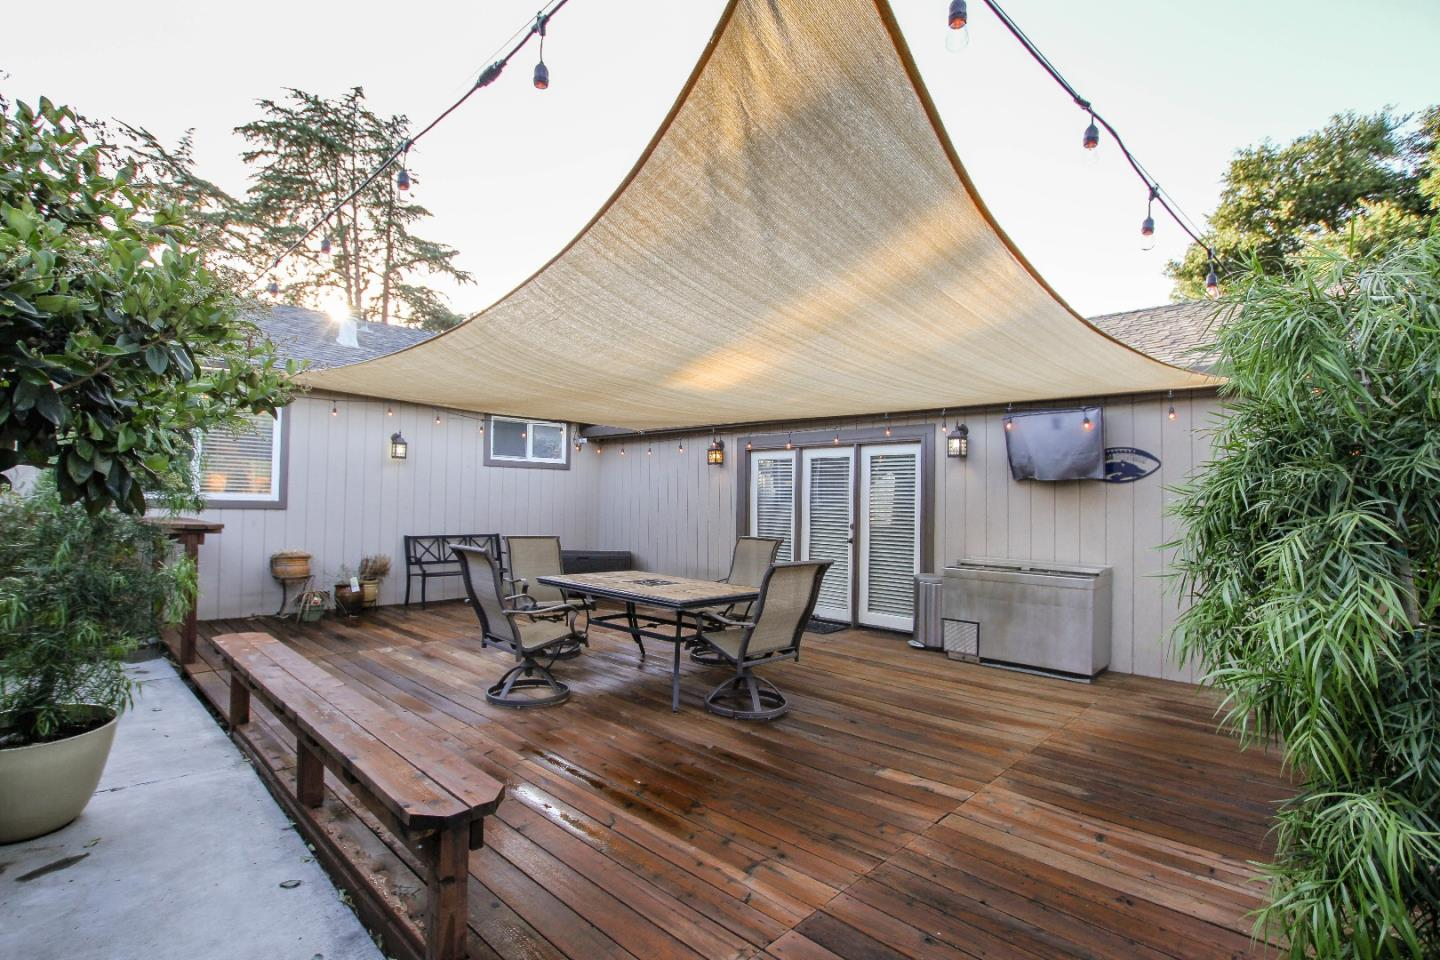 Additional photo for property listing at 15340 Union Avenue  San Jose, Kalifornien 95124 Vereinigte Staaten